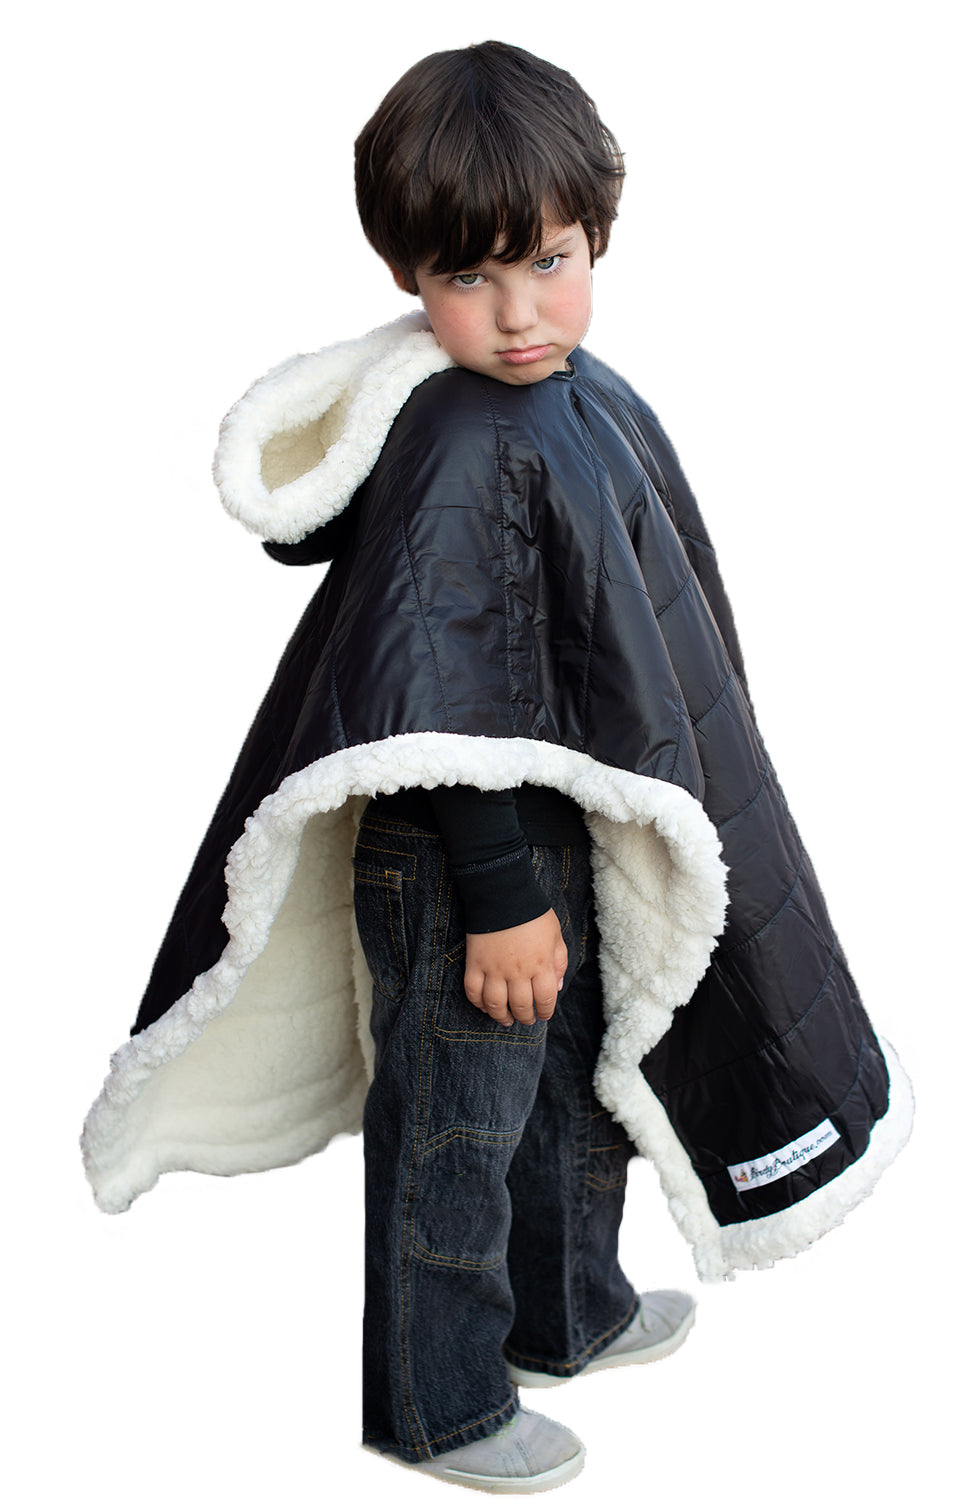 Car Seat Poncho - Car Crash Tested and CPSC Compliant - Black Sherpa